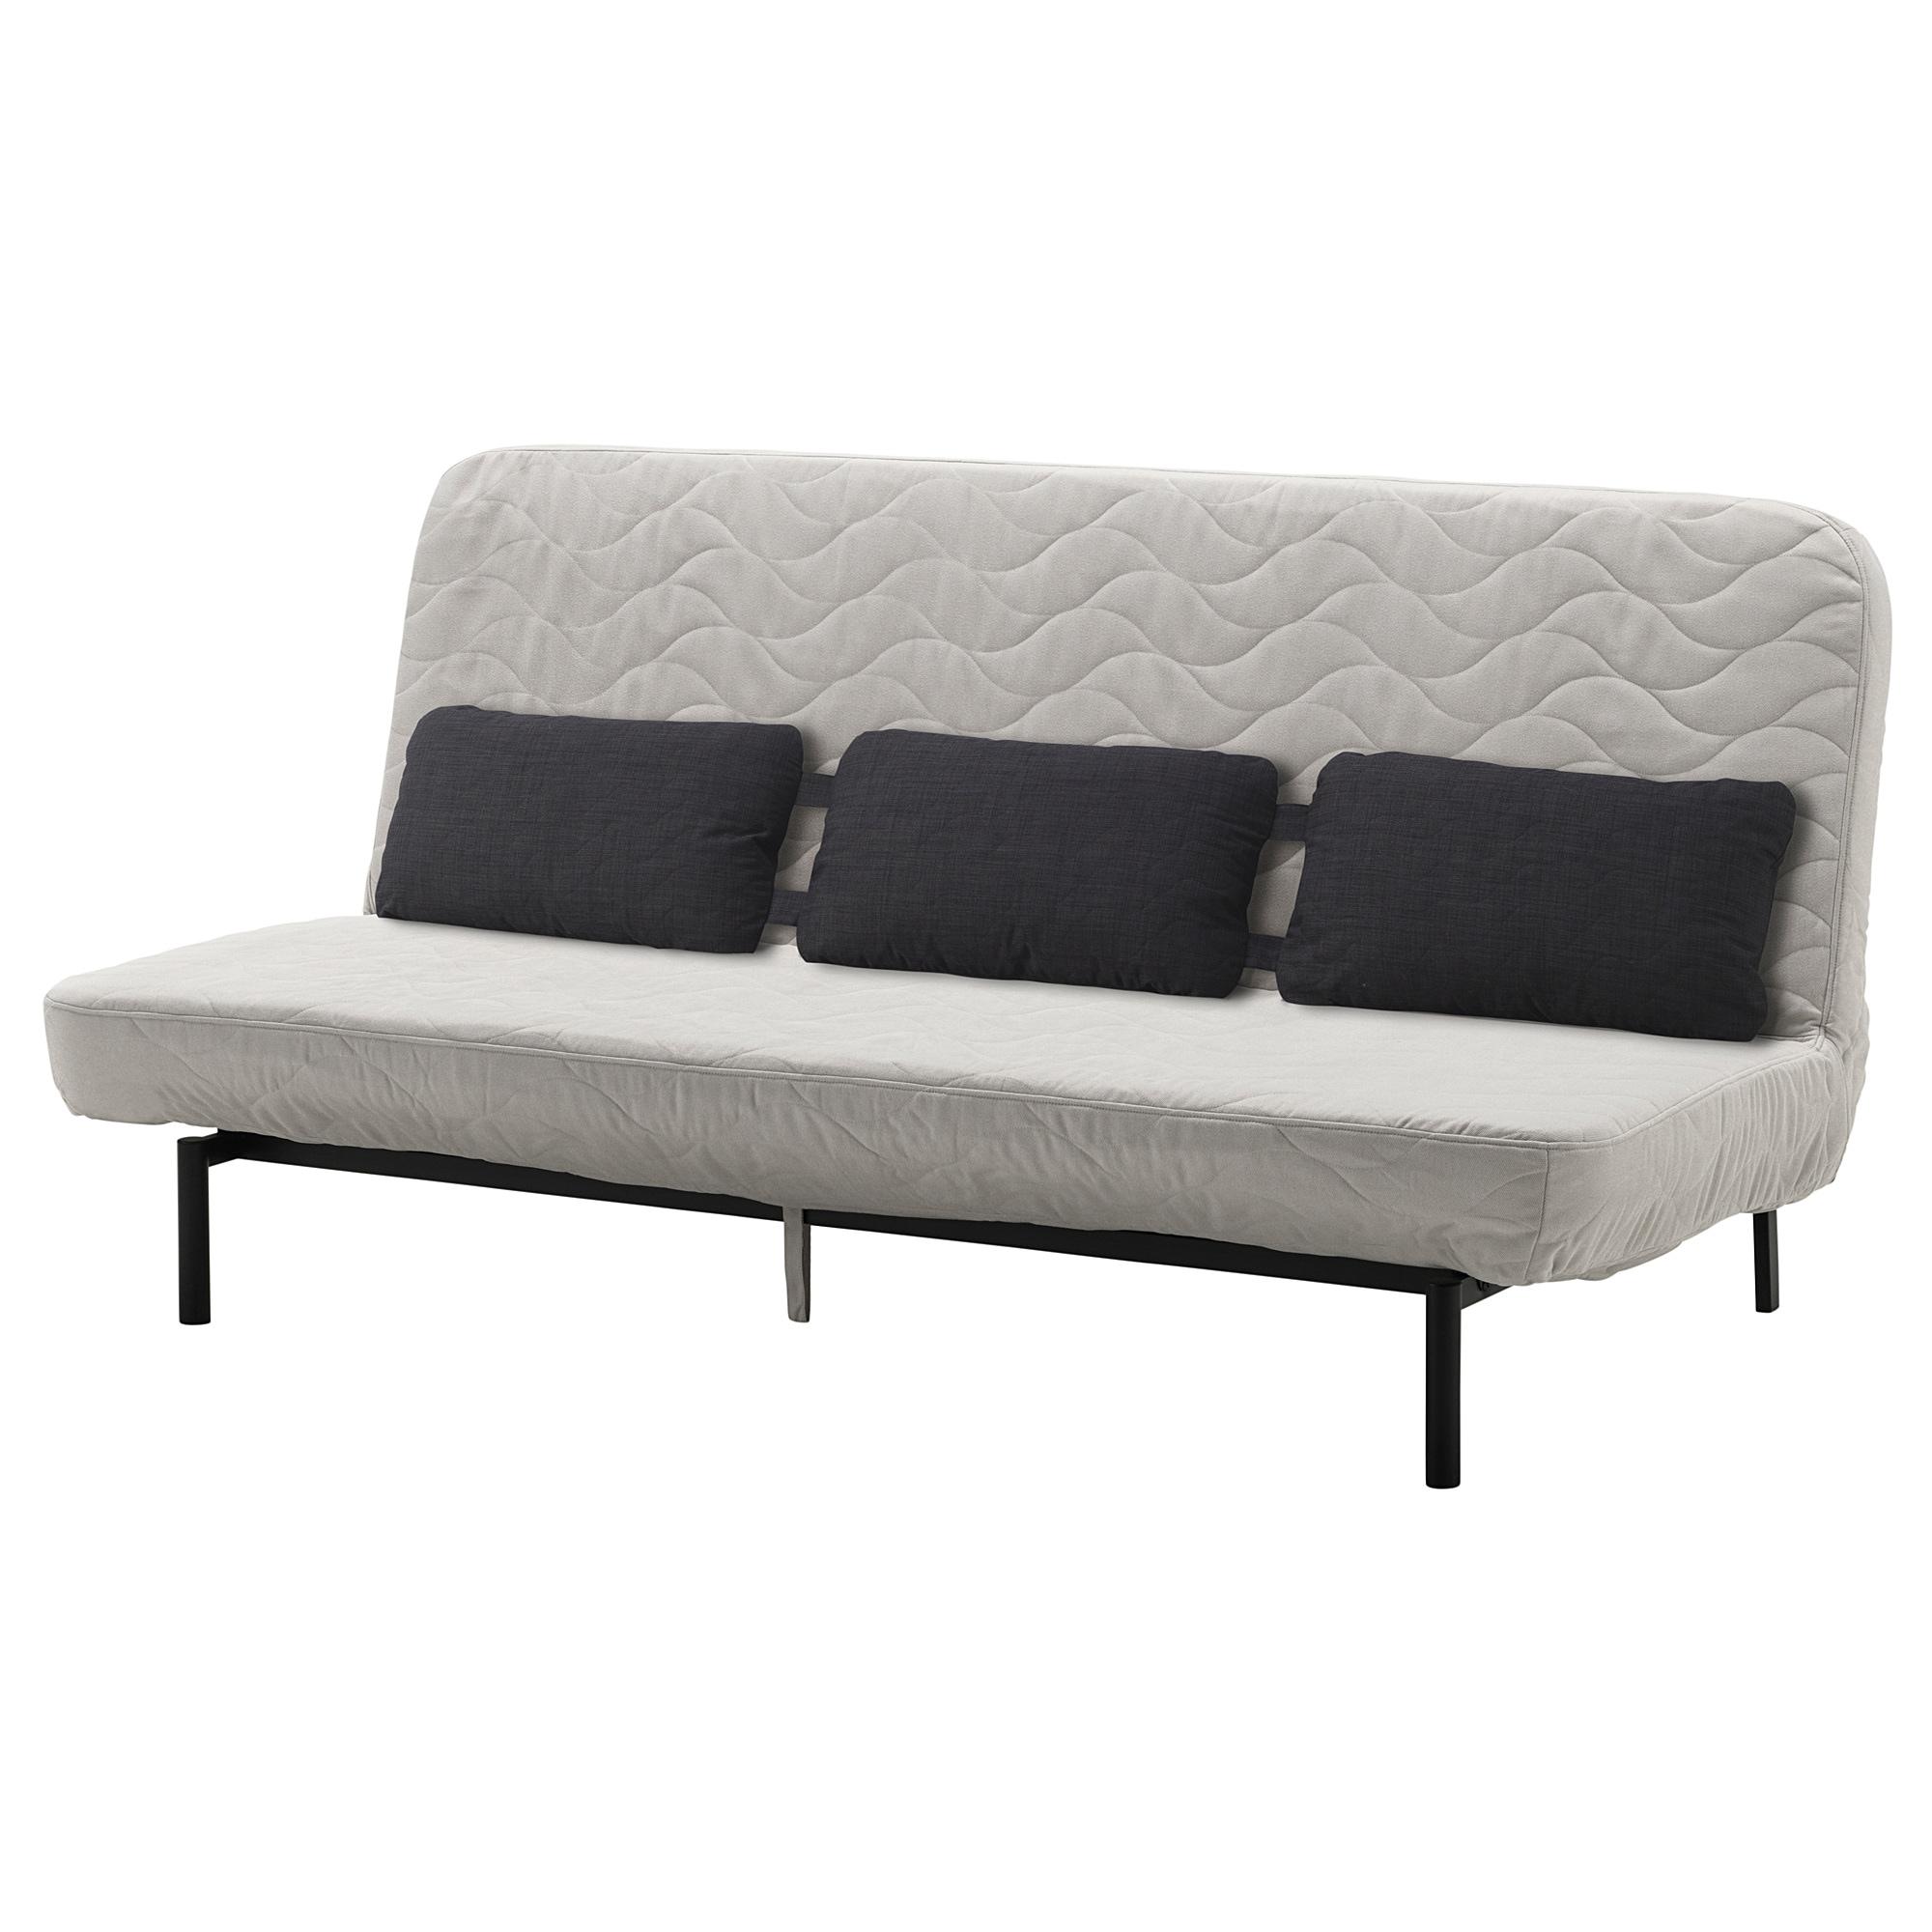 Sofa Beds Futons IKEA - Replacement sleeper sofa mattress